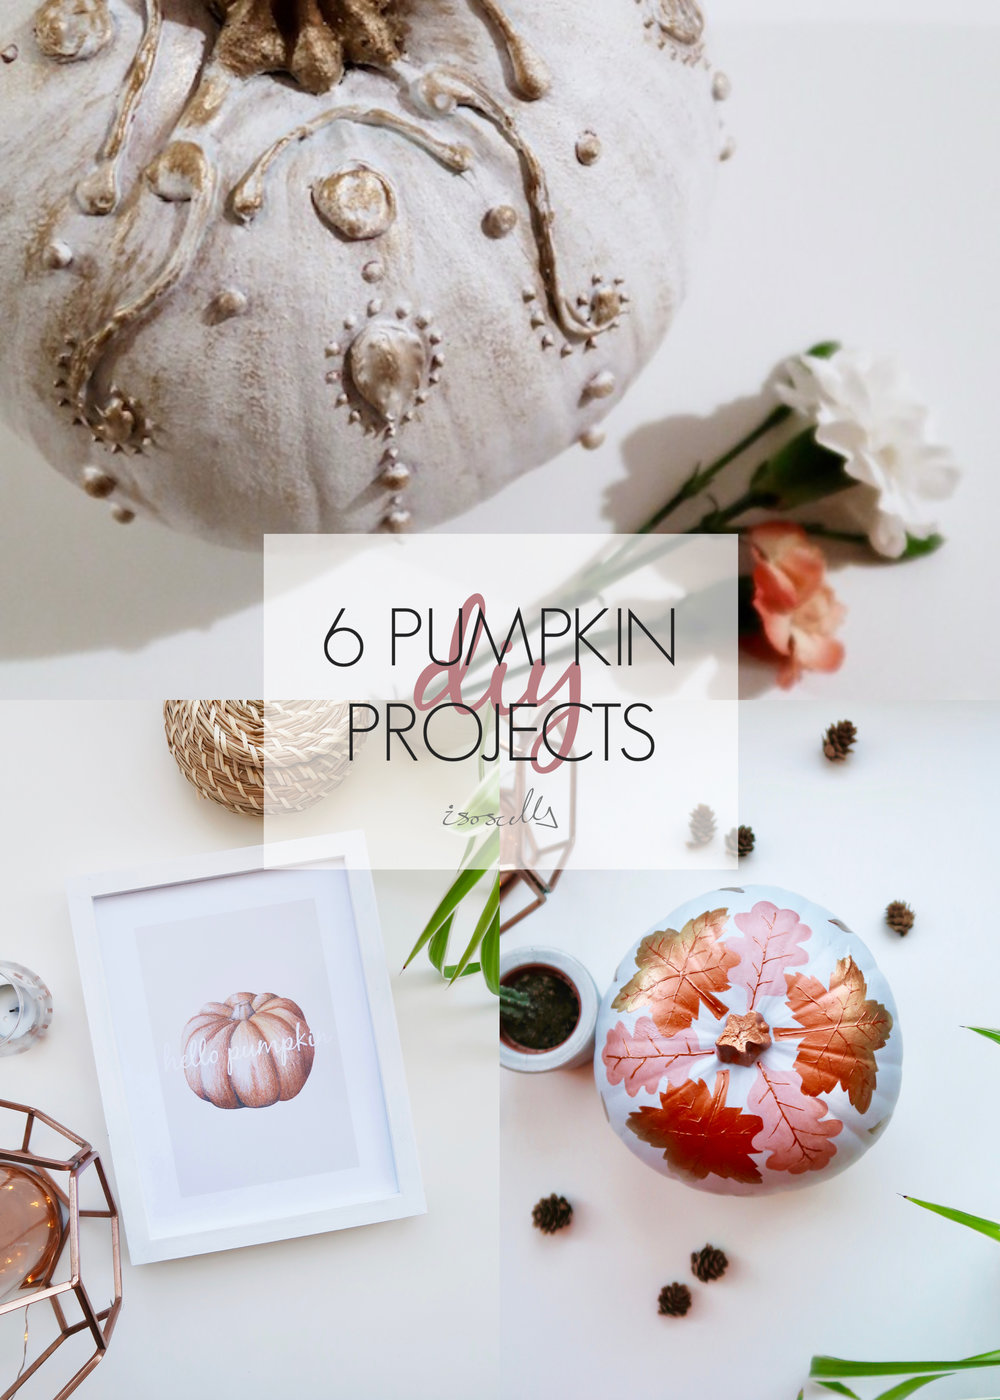 6 Pumpkin Projects by Isoscella